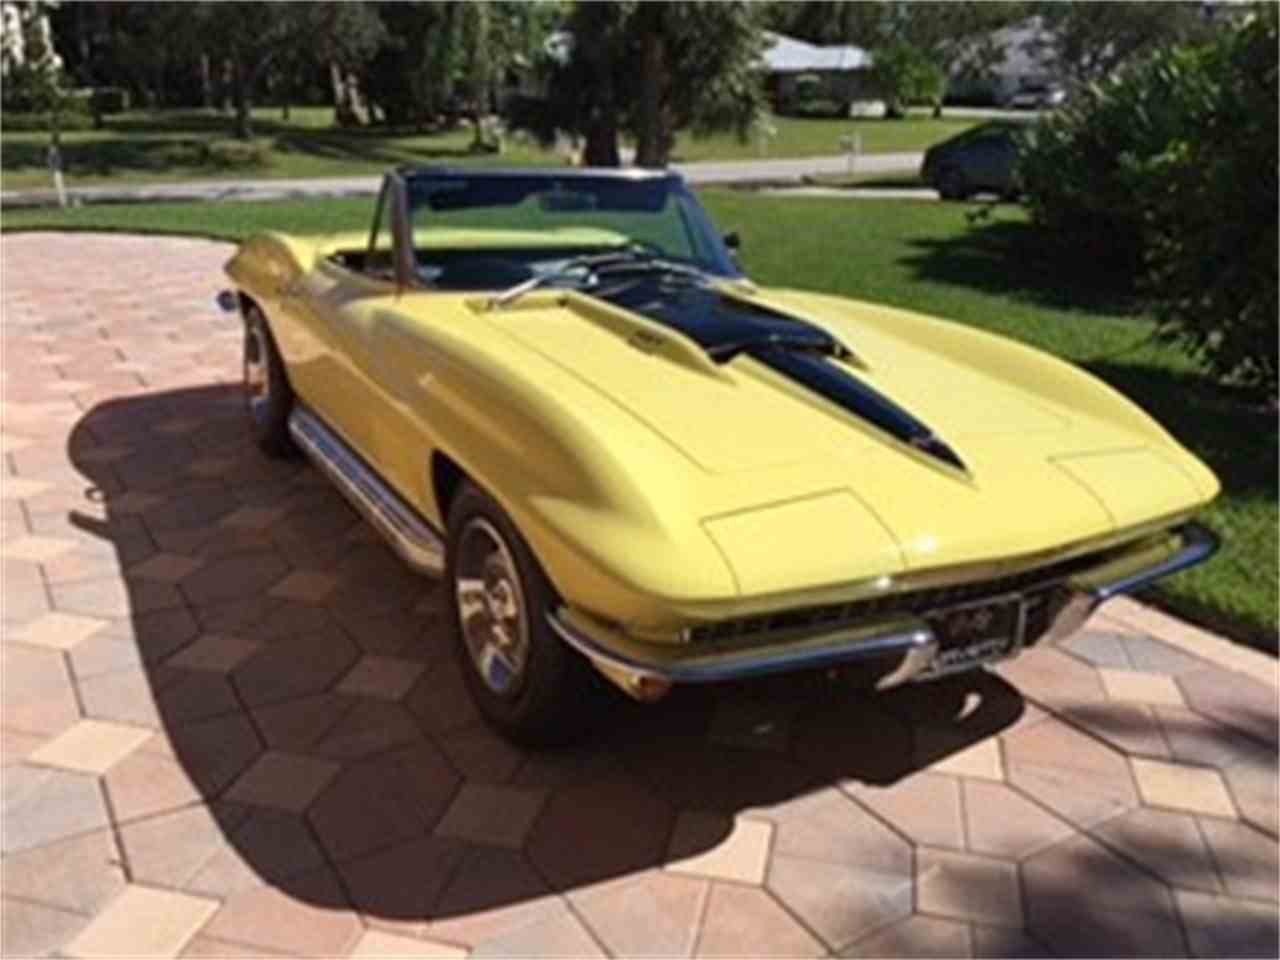 Picture of classic 67 corvette 119 000 00 offered by a private seller mdfa